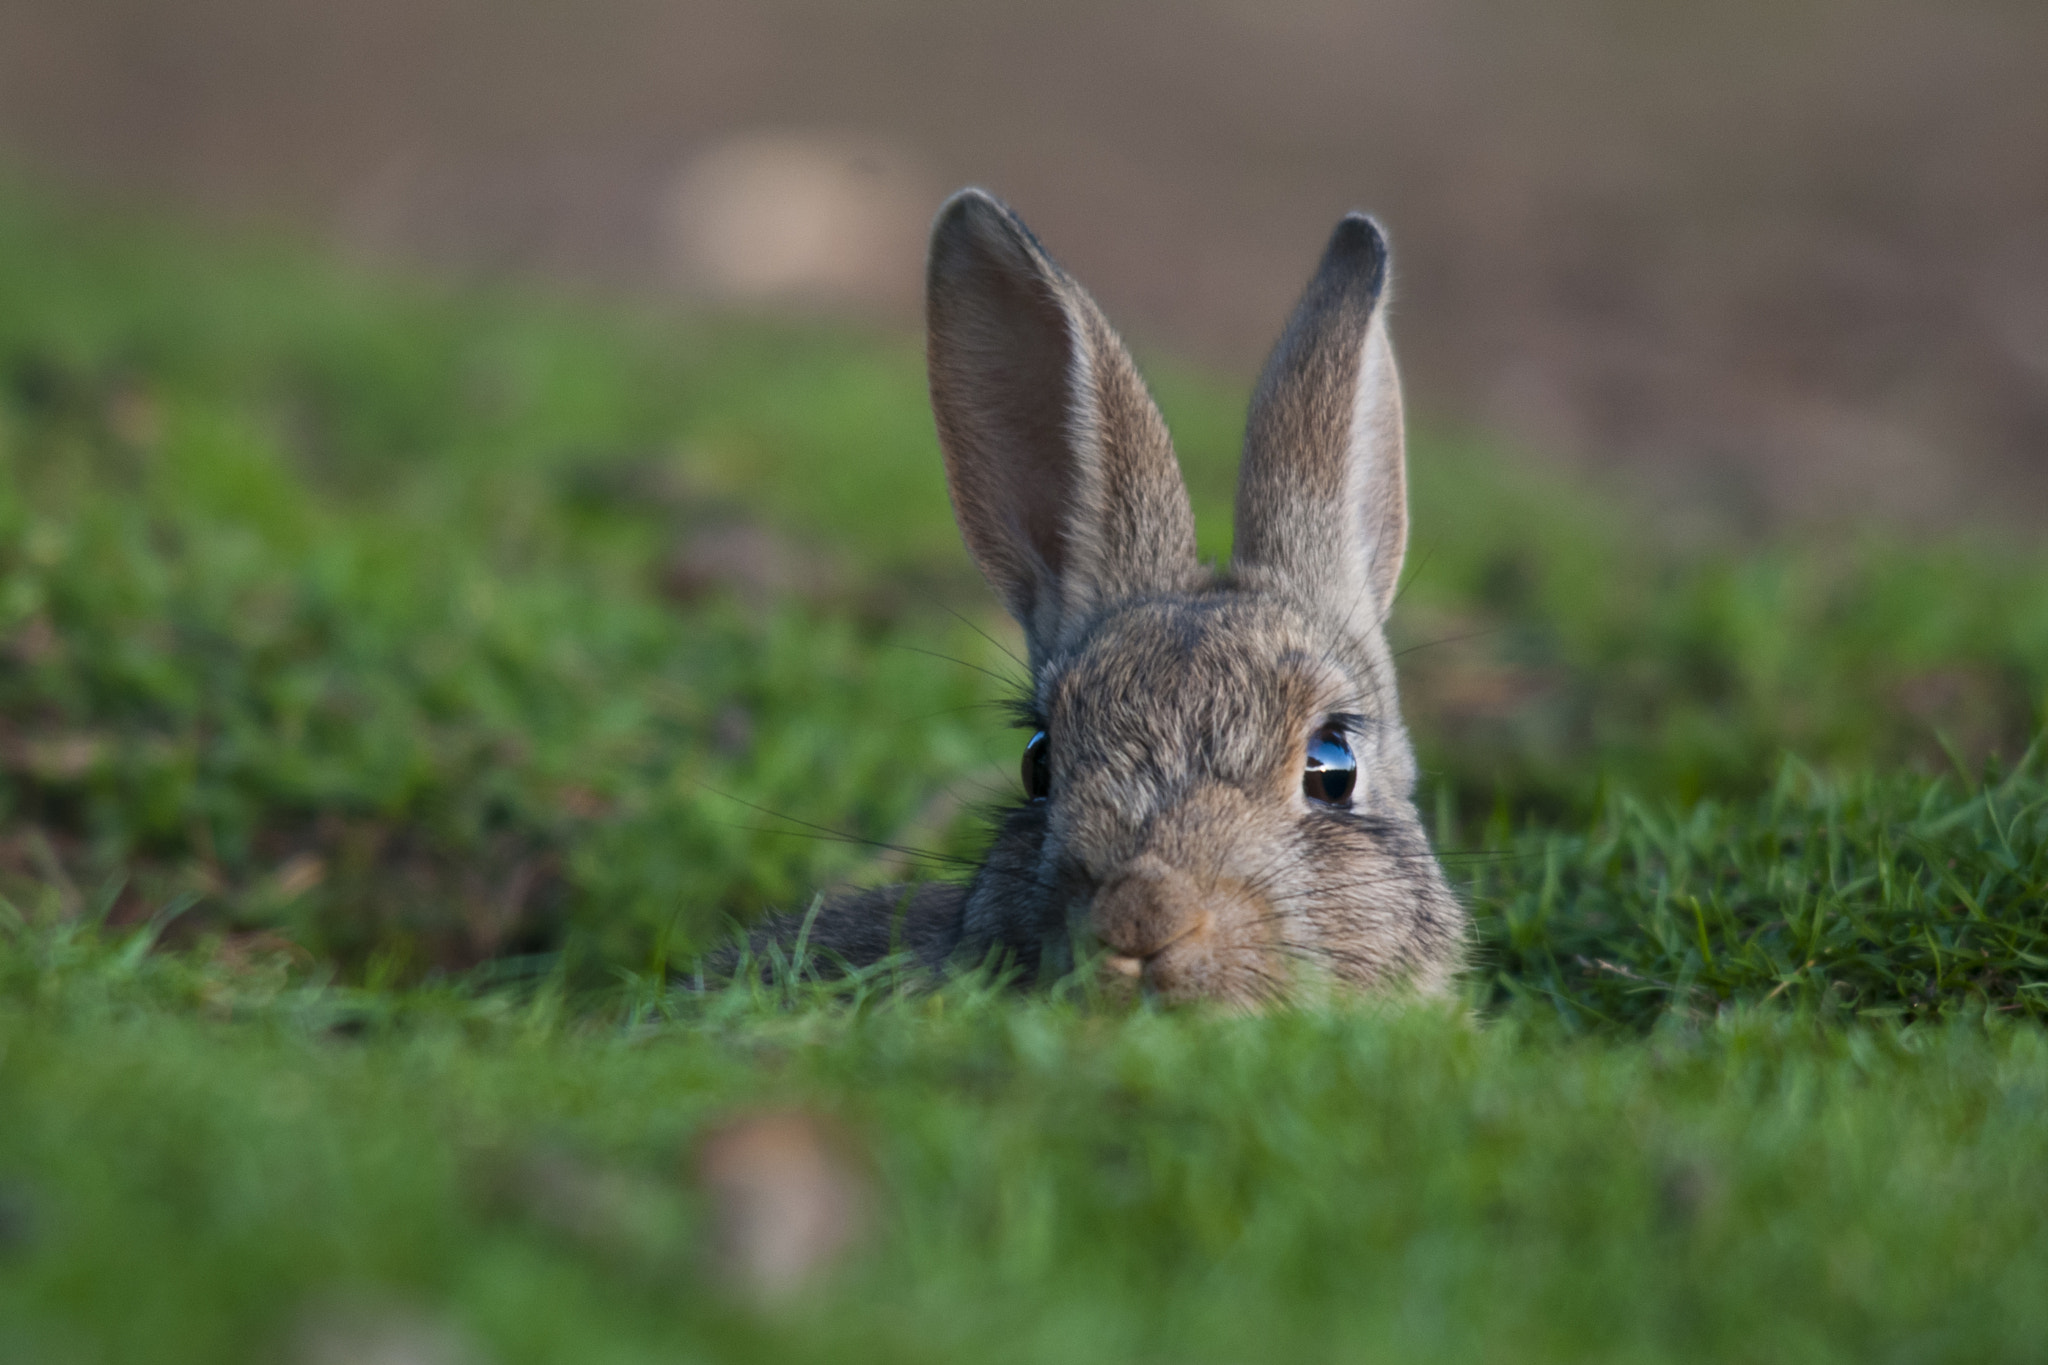 Photograph Peering Rabbit by Sam Rowley on 500px